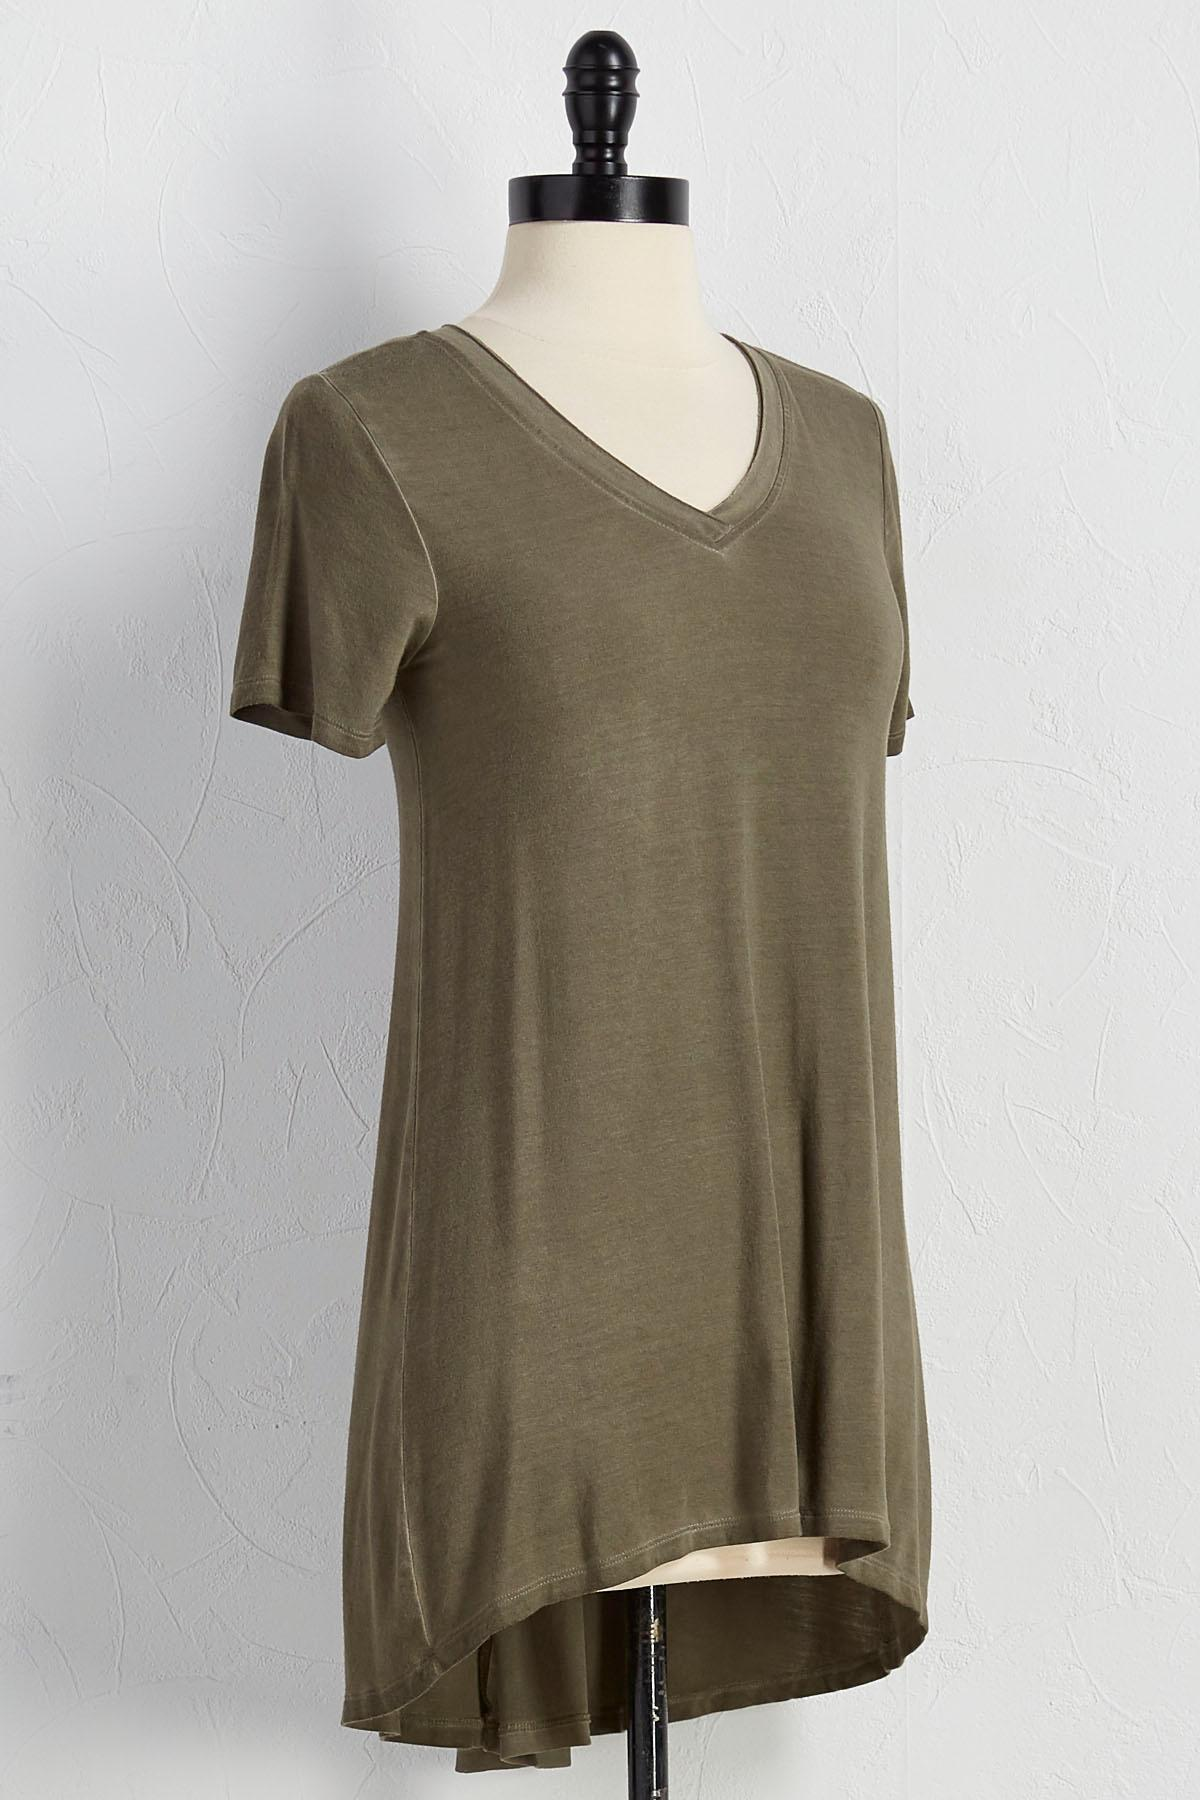 Mineral Wash High- Low Tunic